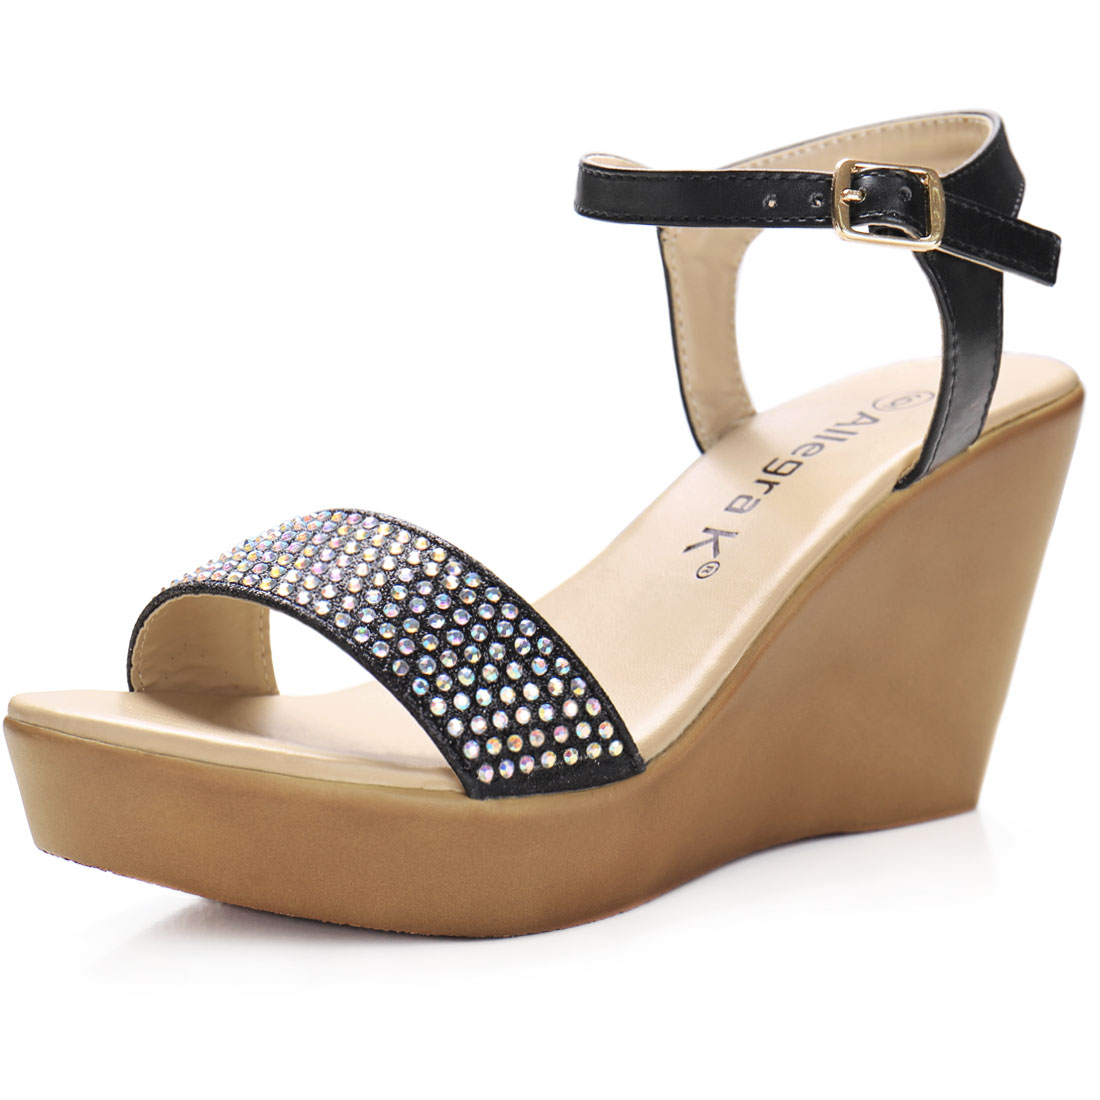 Woman Rhinestones Embellished Open Toe Wedge Sandals Black US 10